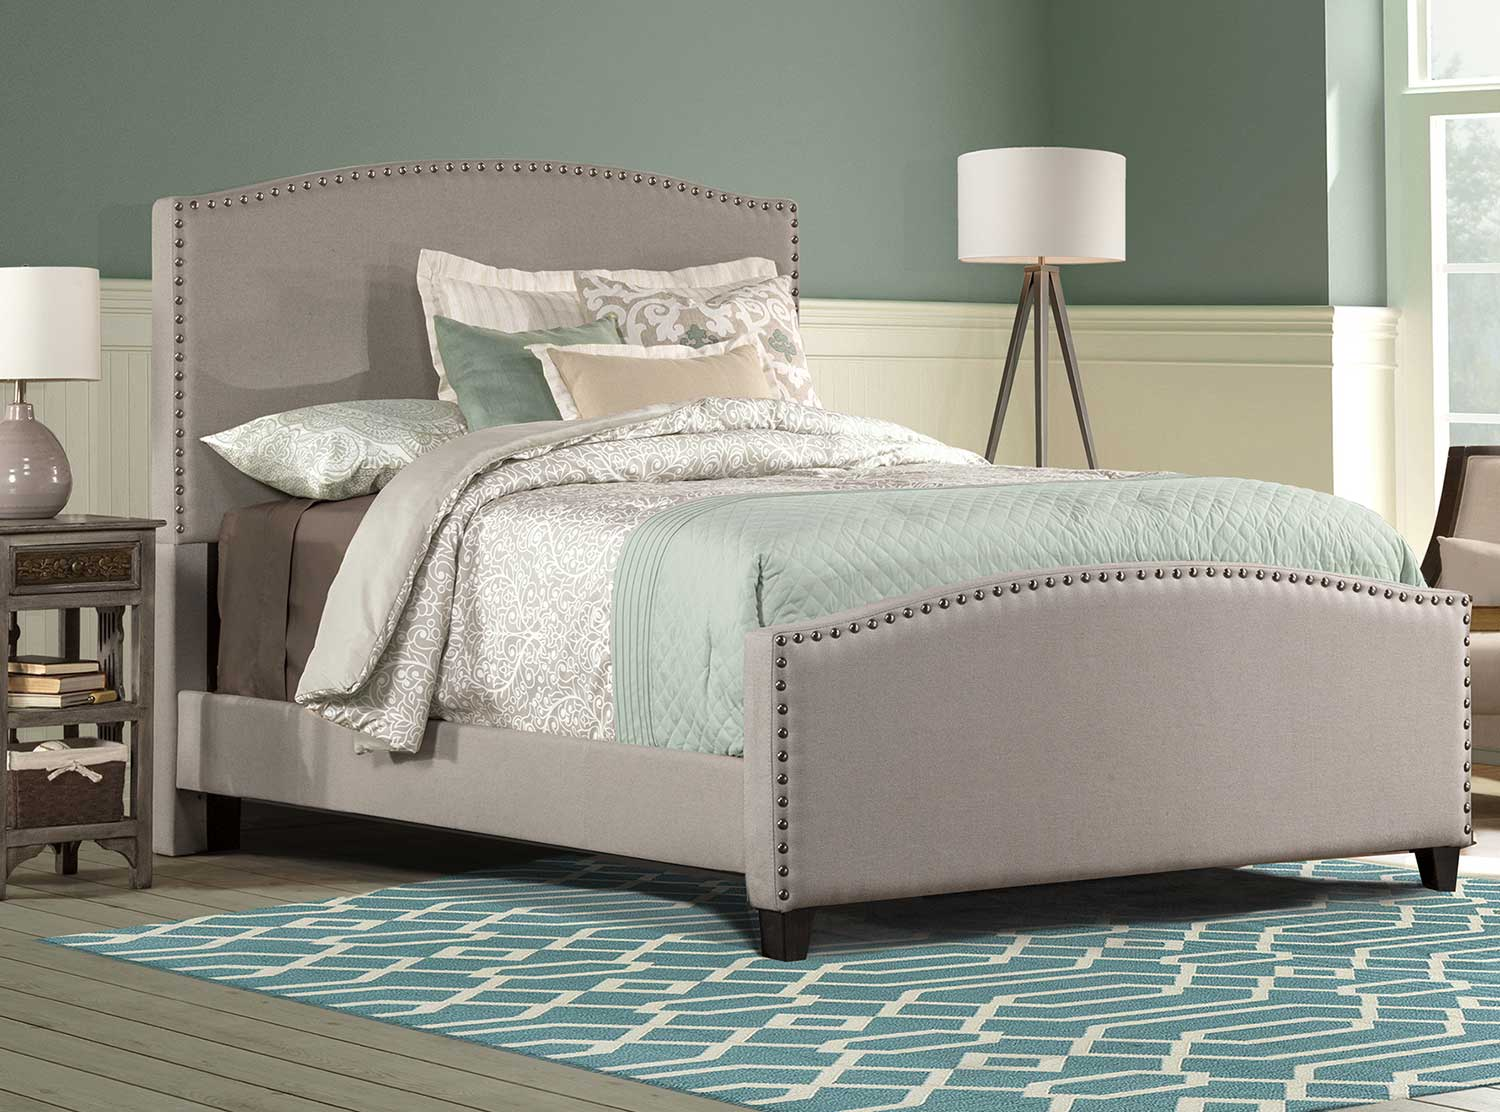 Hillsdale Kerstein Bed - Dove Gray